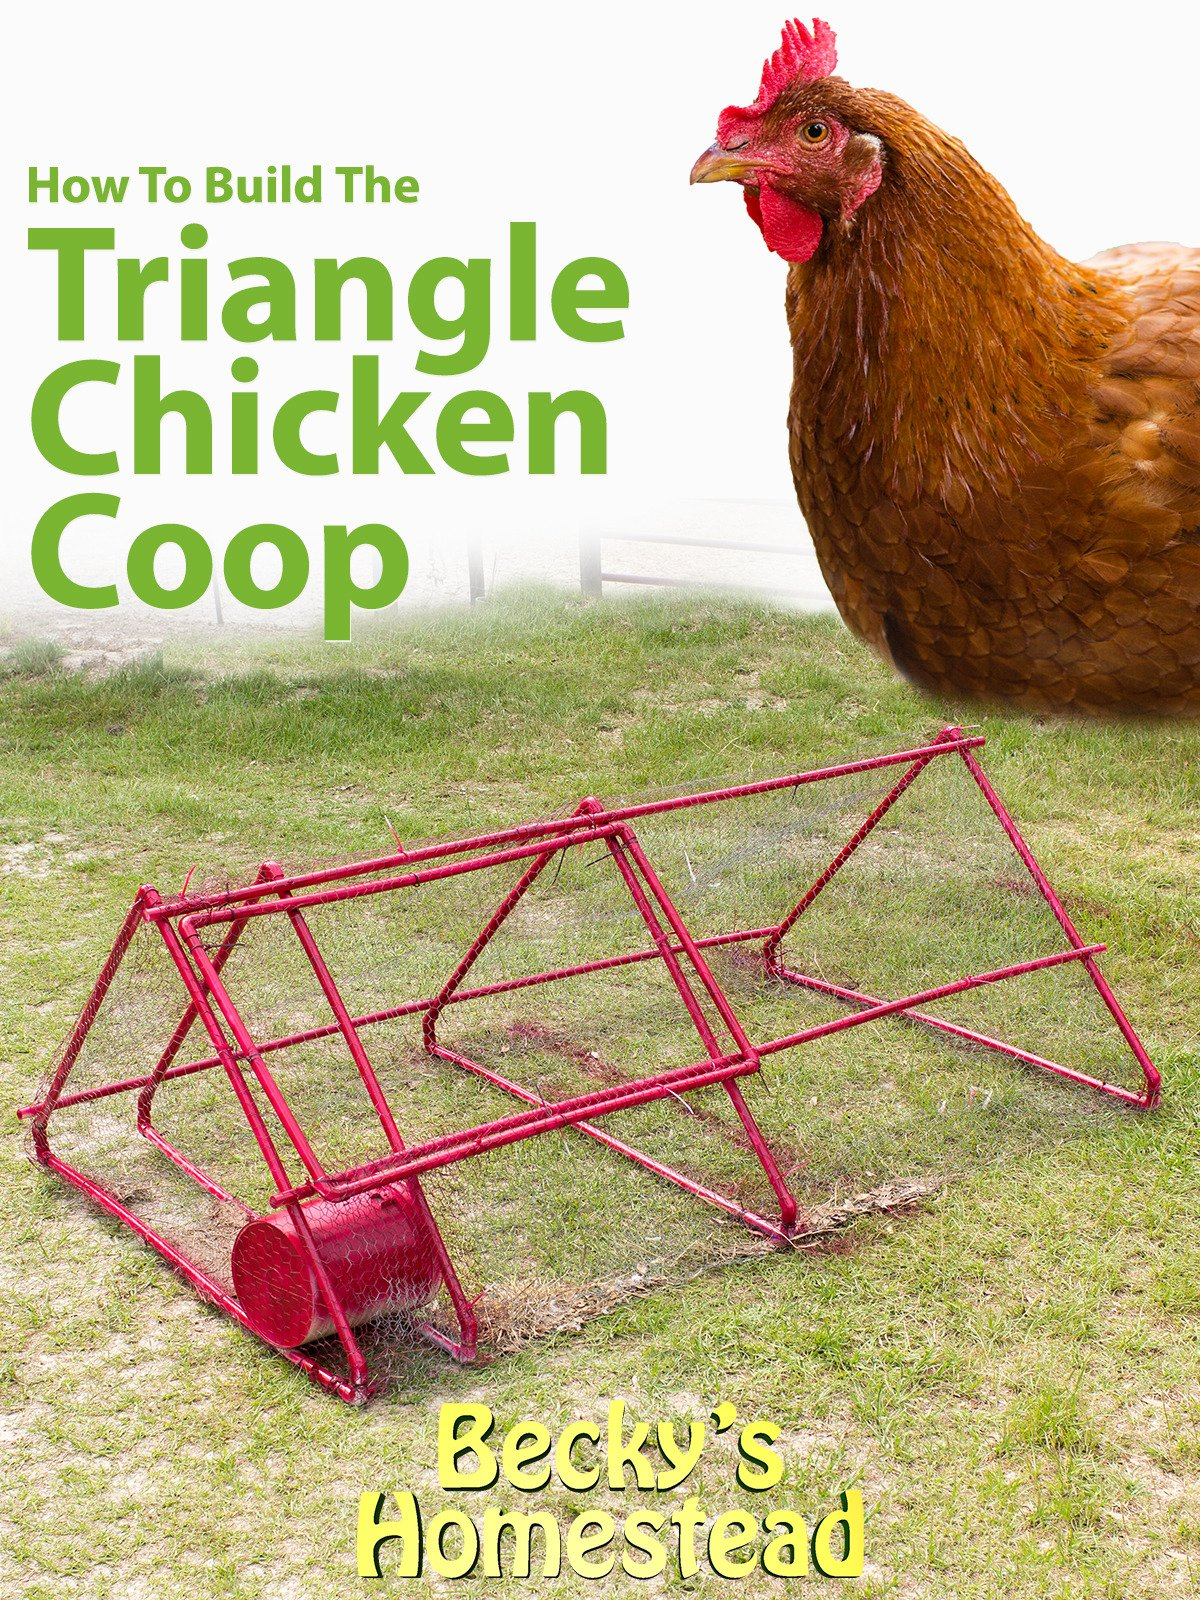 How To Build The Triangle Chicken Coop